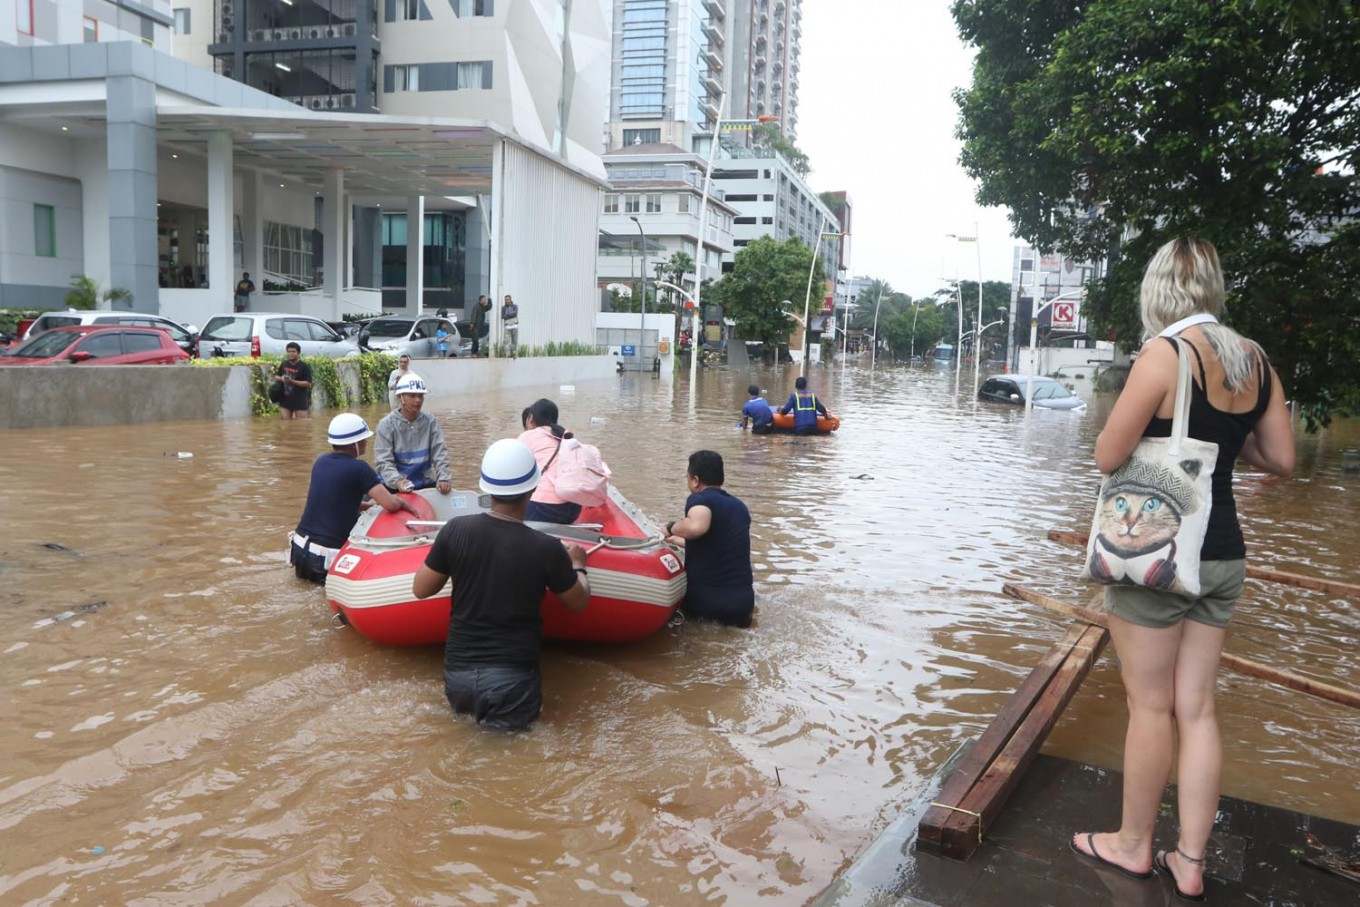 Flood victims still stranded as relief agencies overwhelmed by volume, access